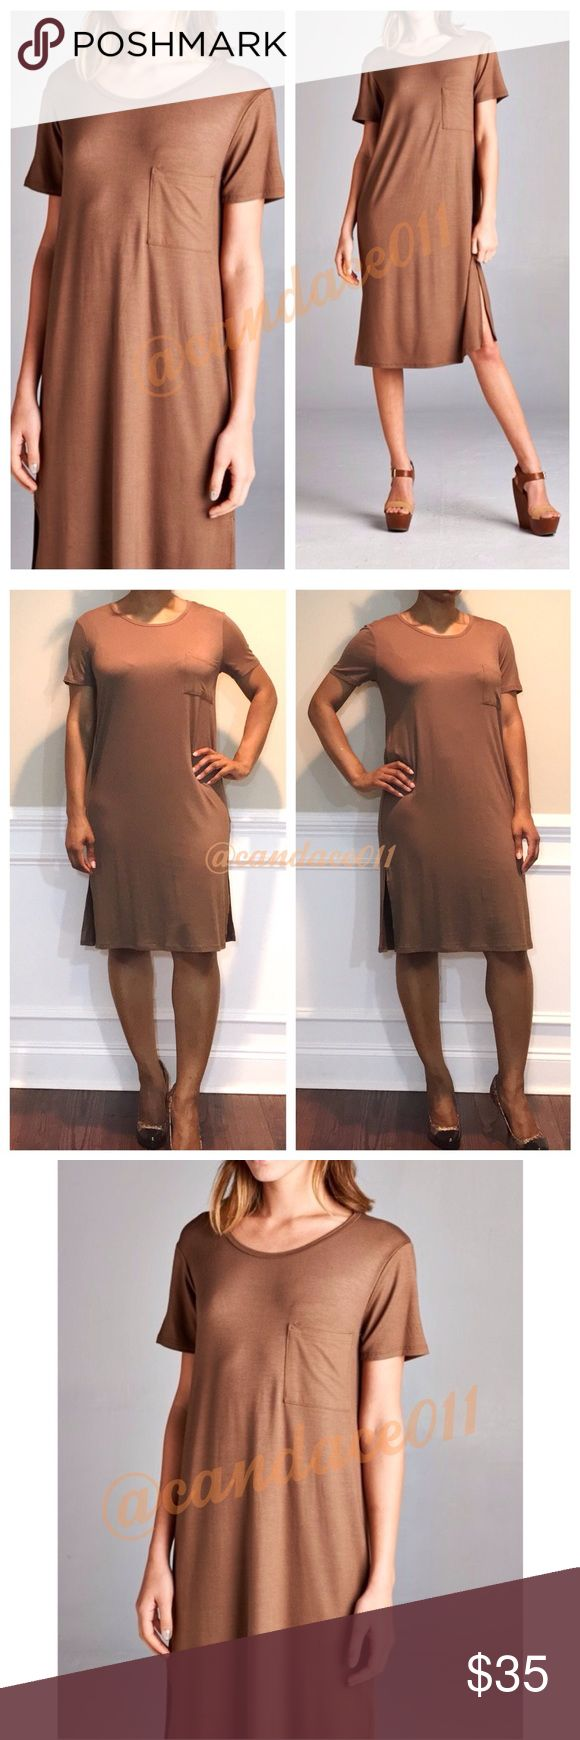 "T-Shirt Midi Dress (Mocha) ✳️Feel free to make a reasonable offer. 👍 ✳️ 🔹Short sleeved. Round neck. Front pocket. 🔹10"" slits on each side. 🔹95% Rayon, 5% Spandex 🔹Size recommendations: S (2-4), M (6-8), L (10-12) 🇺🇸Made in the USA🇺🇸 CC Boutique  Dresses Midi"